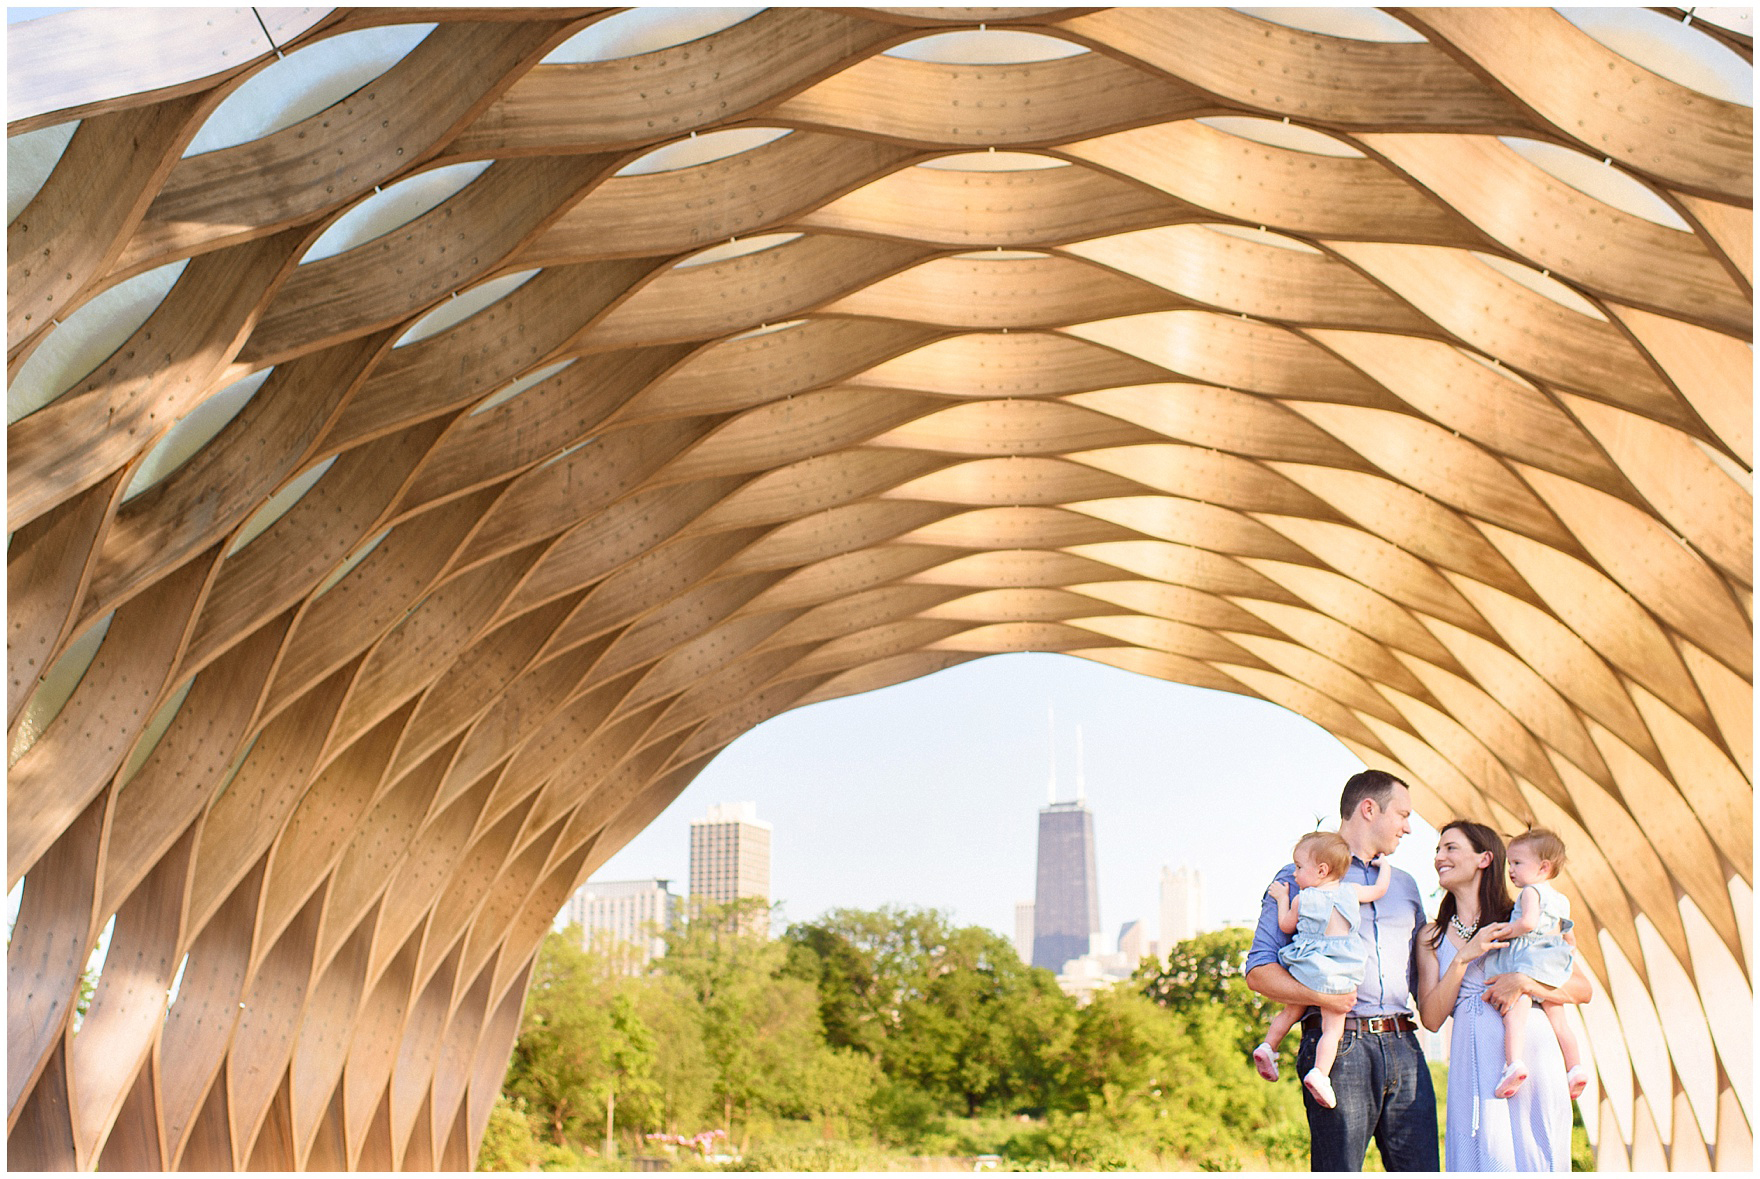 A family stands under the honeycomb during a Chicago Lincoln Park family photography session.